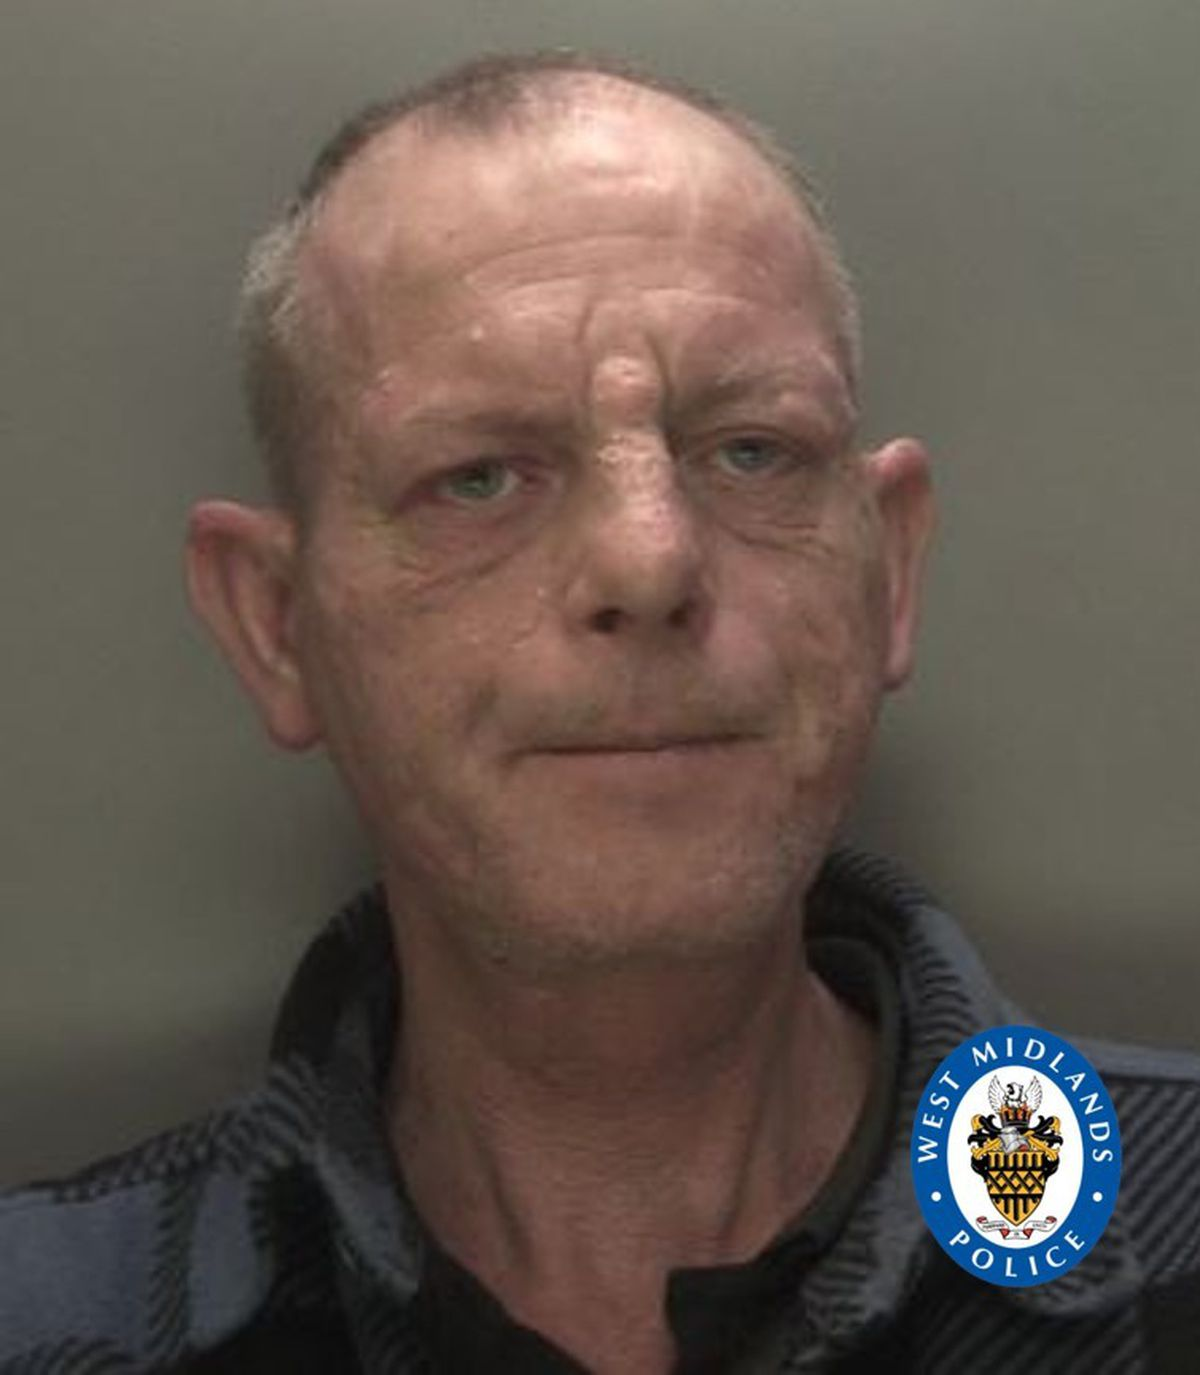 Jailed Man 47 Pestered 15 Year Old Girl For Sex Express Star